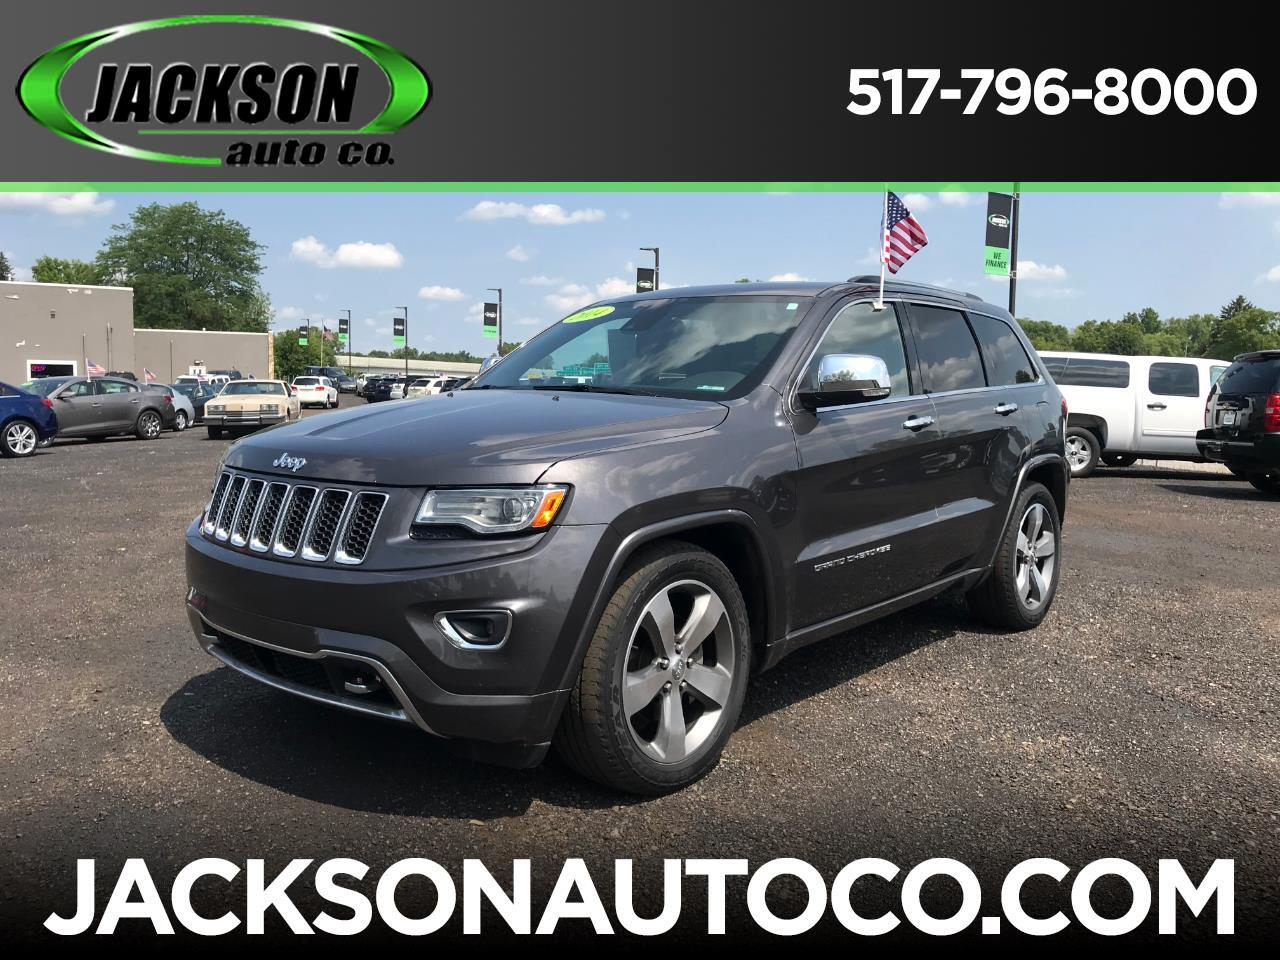 2014 Jeep Grand Cherokee 4WD 4dr Overland